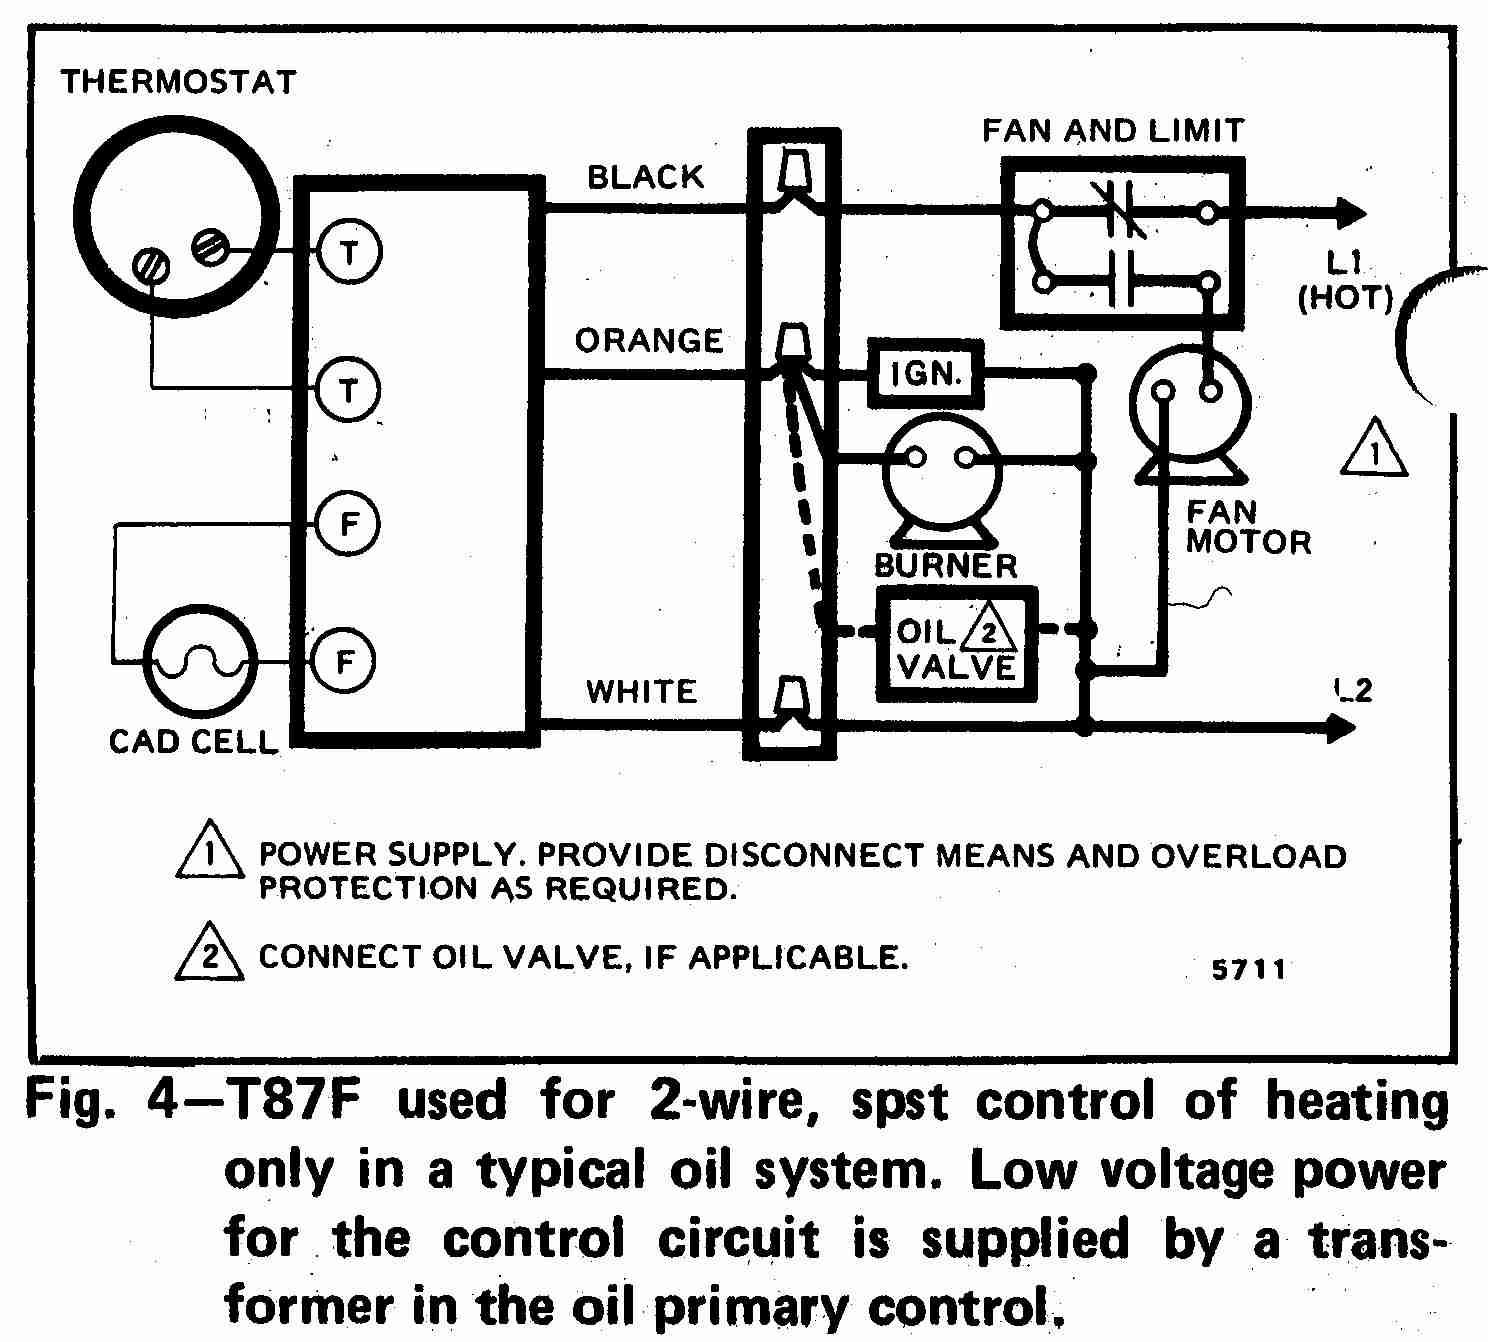 hight resolution of room thermostat wiring diagrams for hvac systems burner control wire diagram gas heat ac thermostat wire diagram